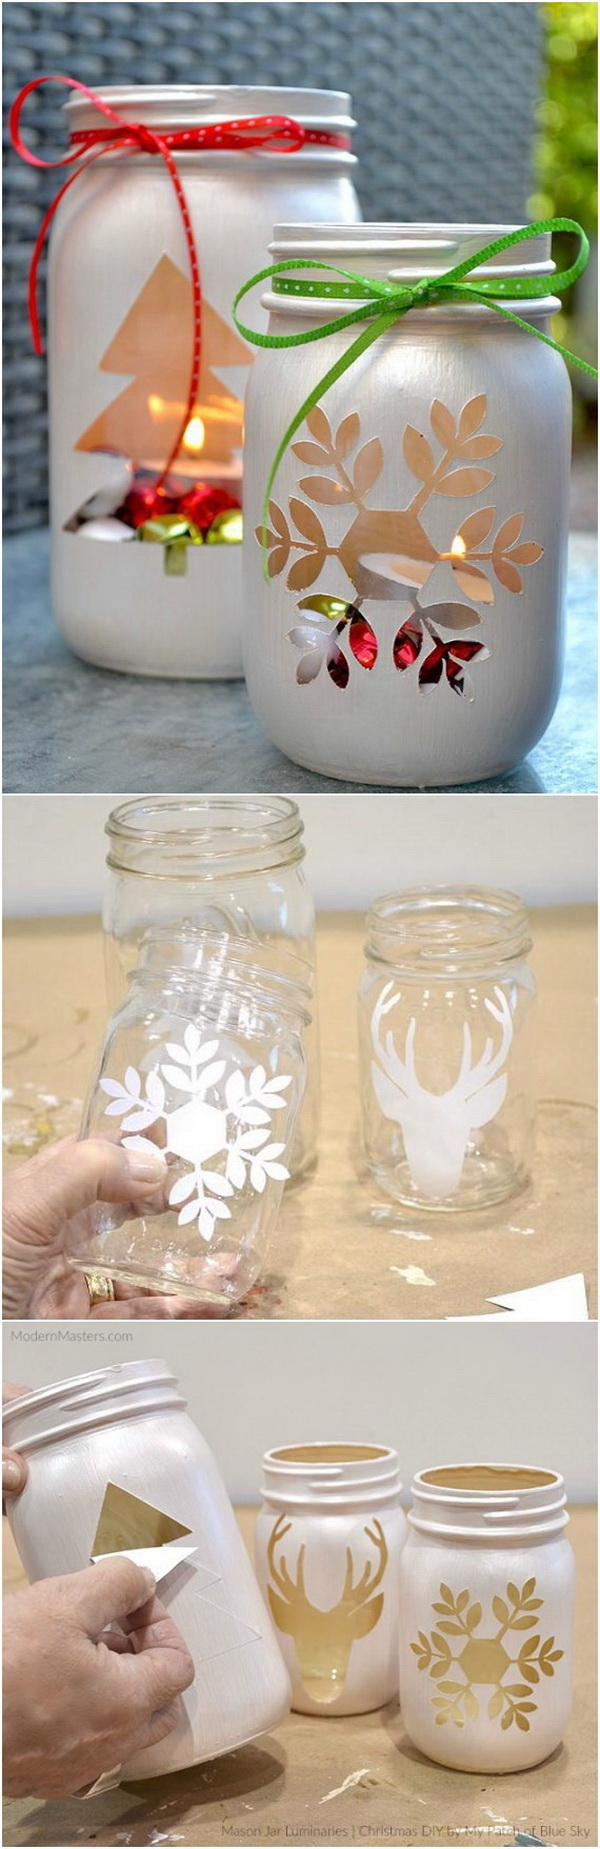 DIY Mason Jar Holiday Luminary.